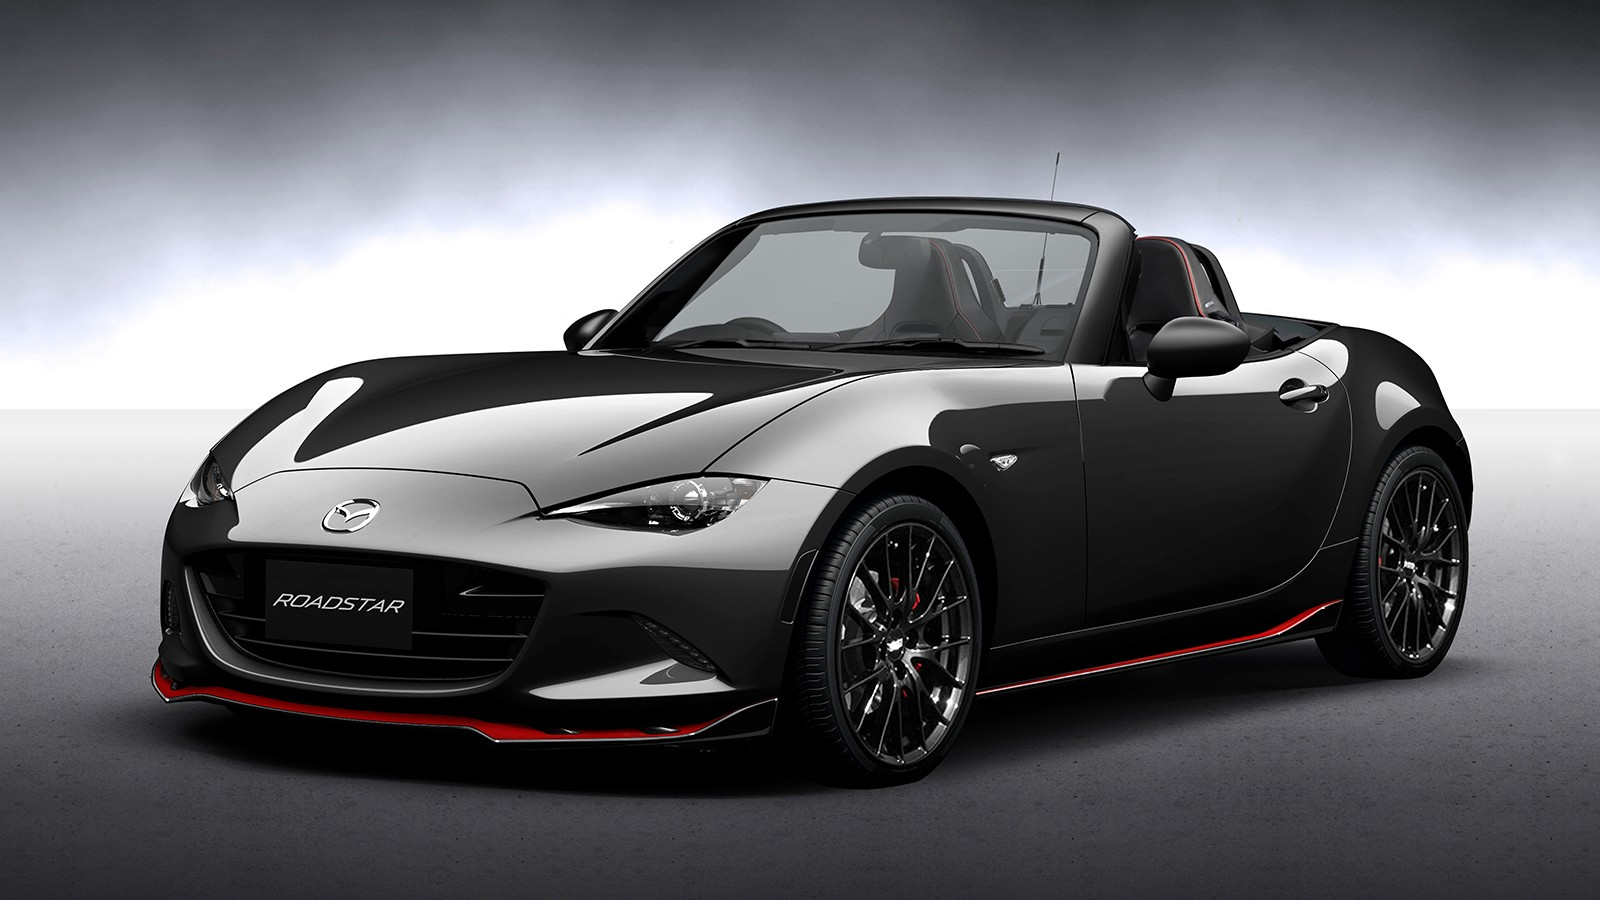 rs-mx5-front-02-ts-1512220807054670-1